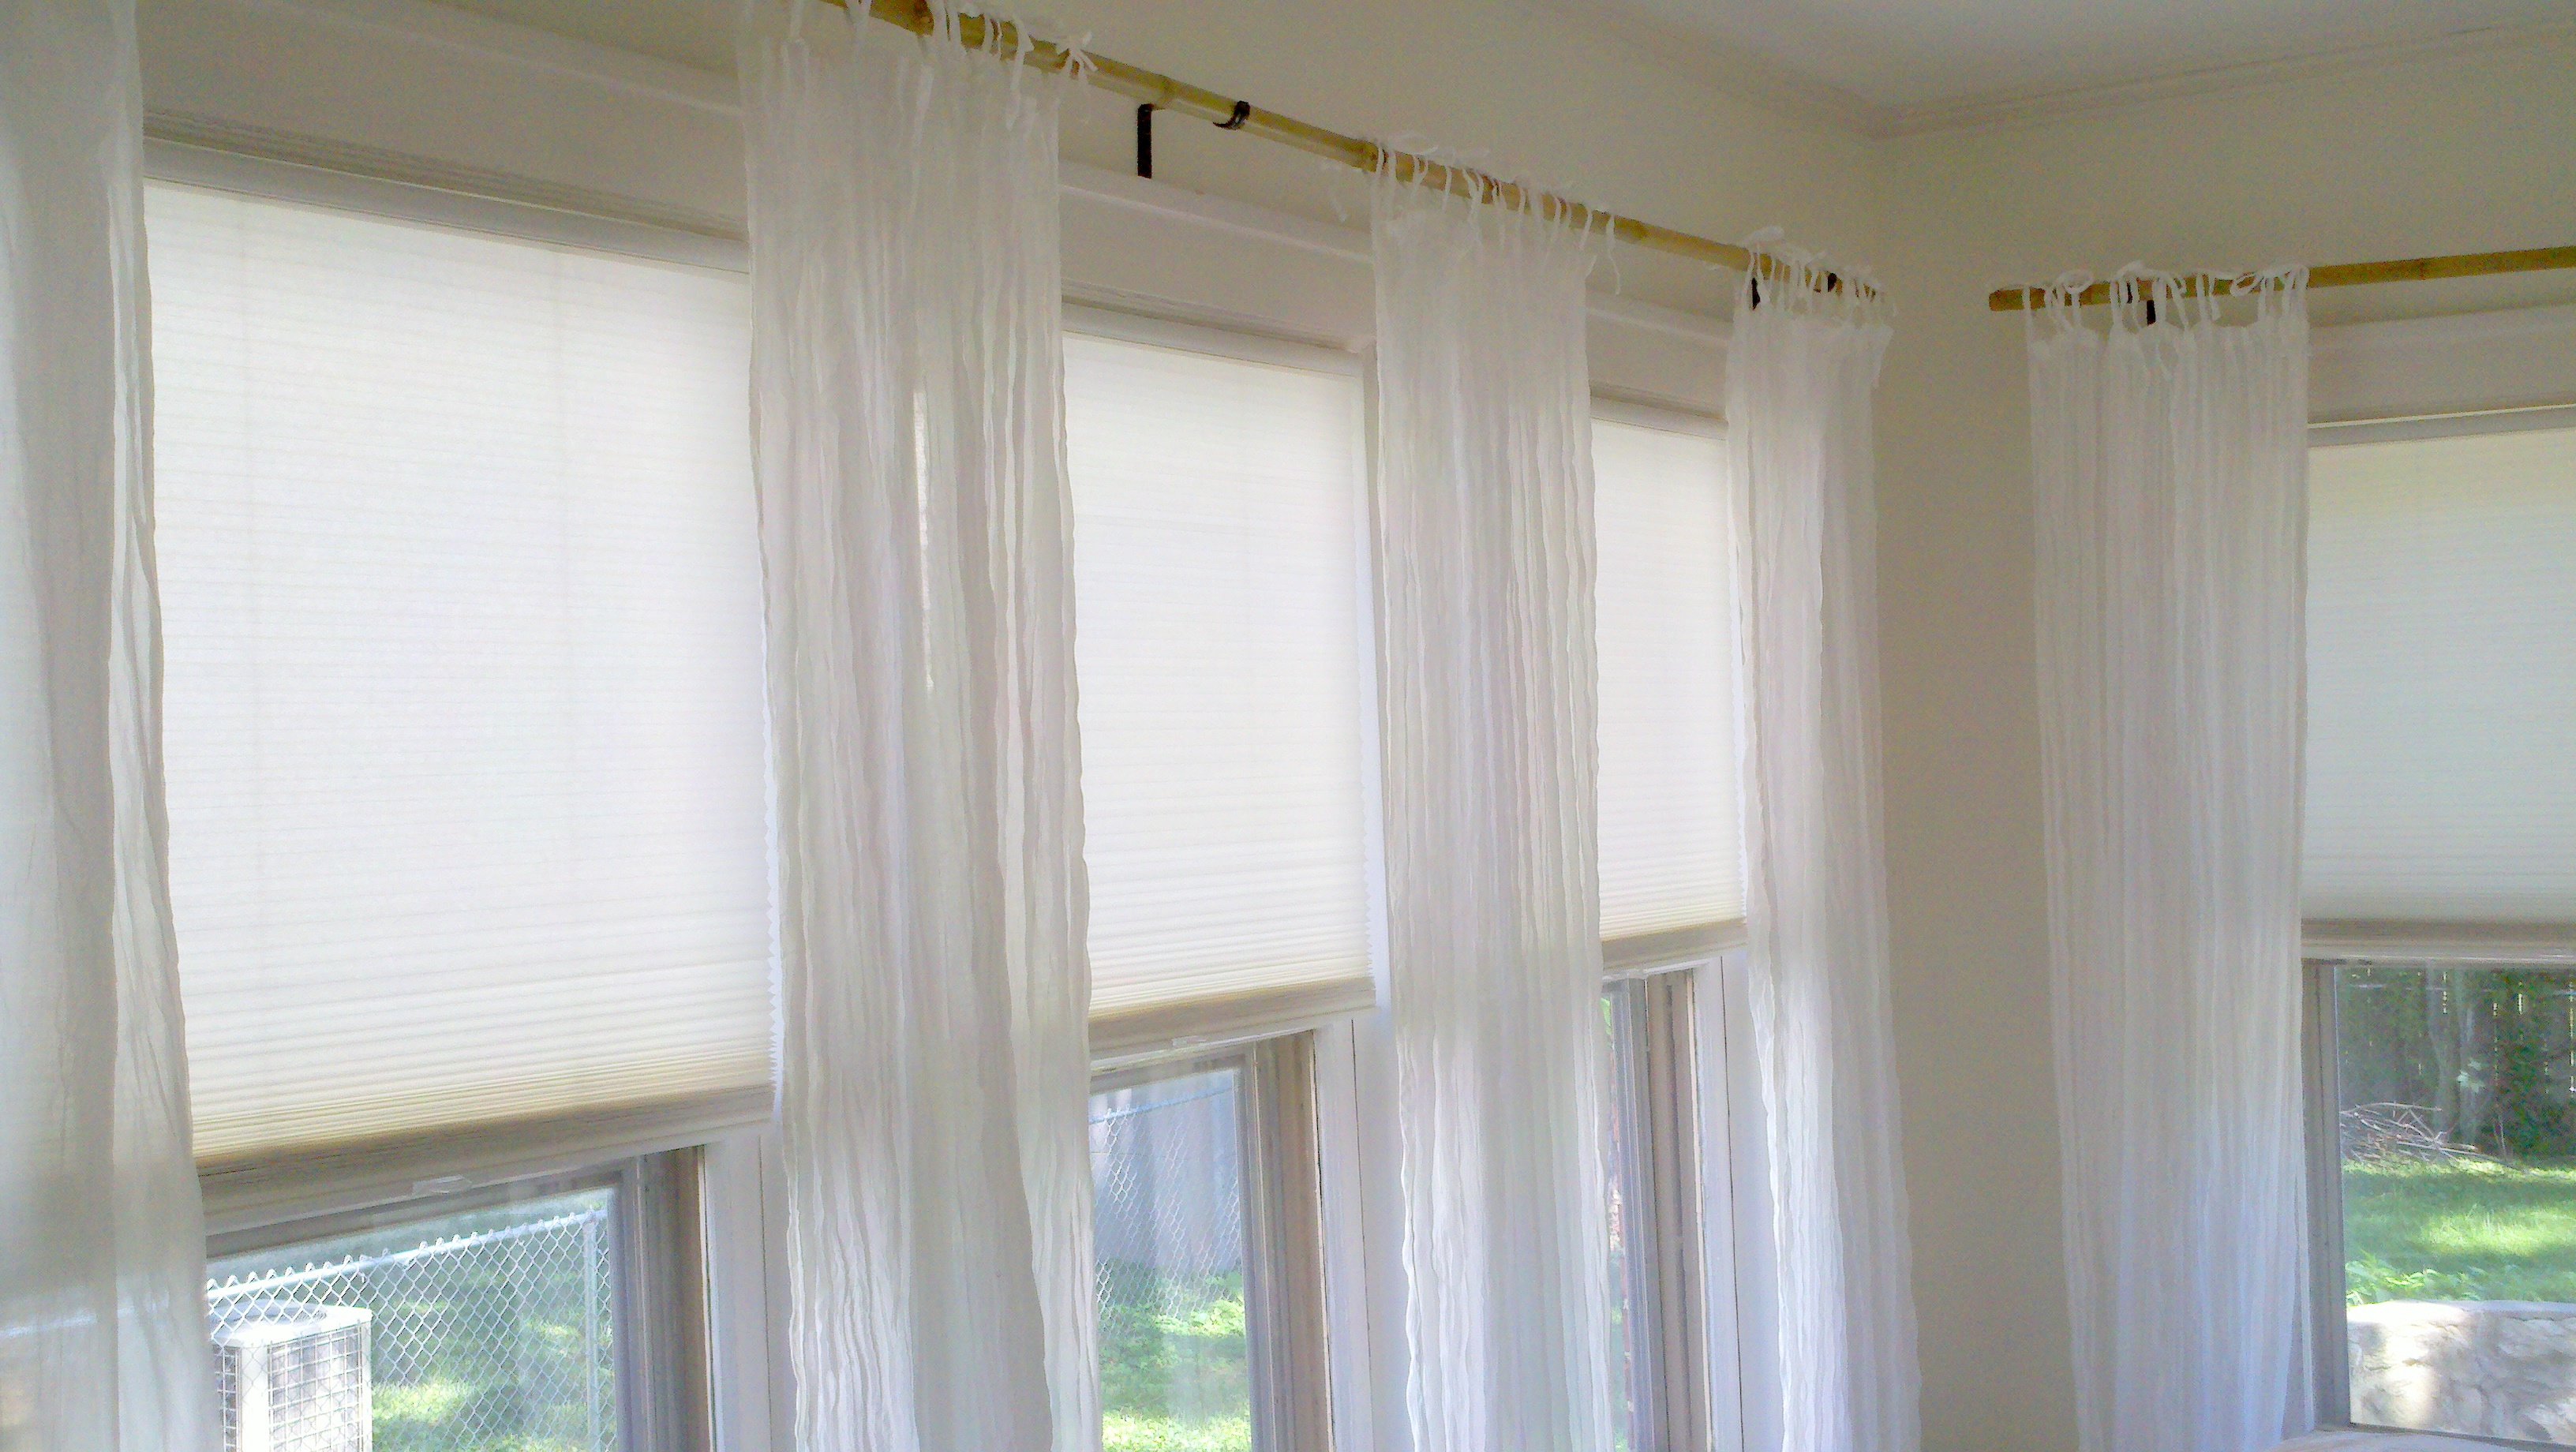 See The Curtains Hanging In The Window Glamorous Curtains You Cant See  Through ~ Decorate The